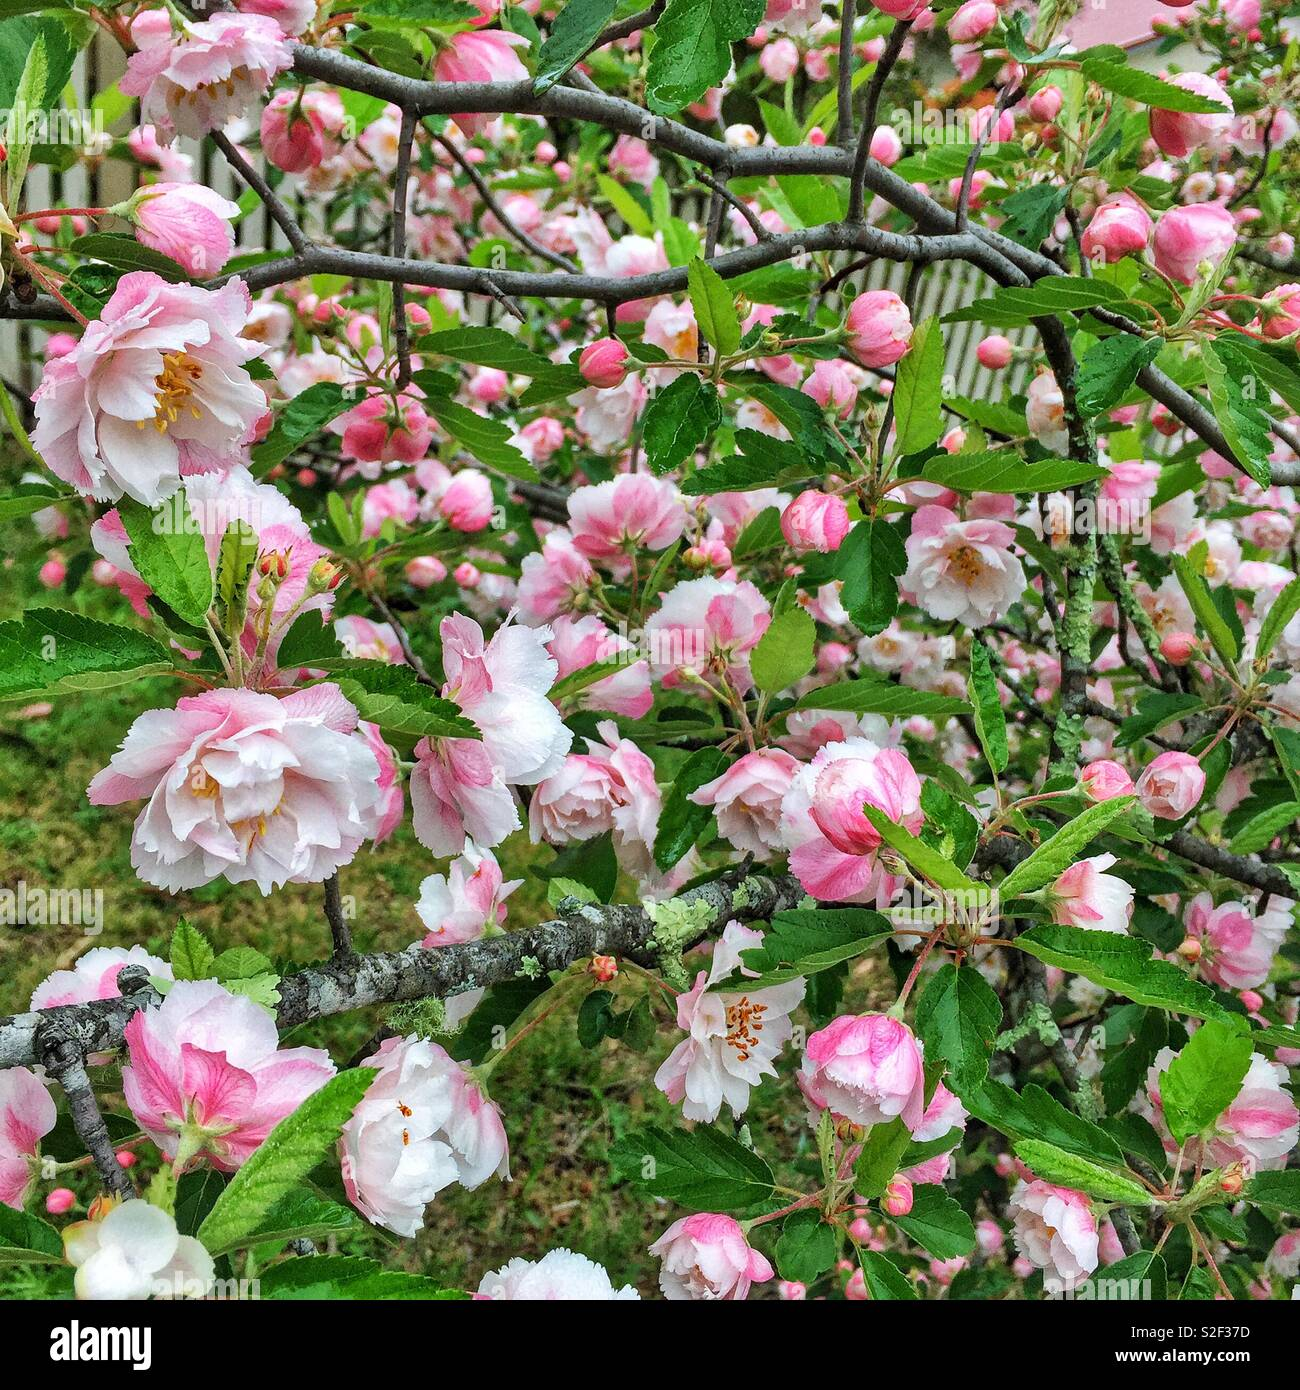 Spring blossom in Leura, Blue Mountains, NSW, Australia - Stock Image